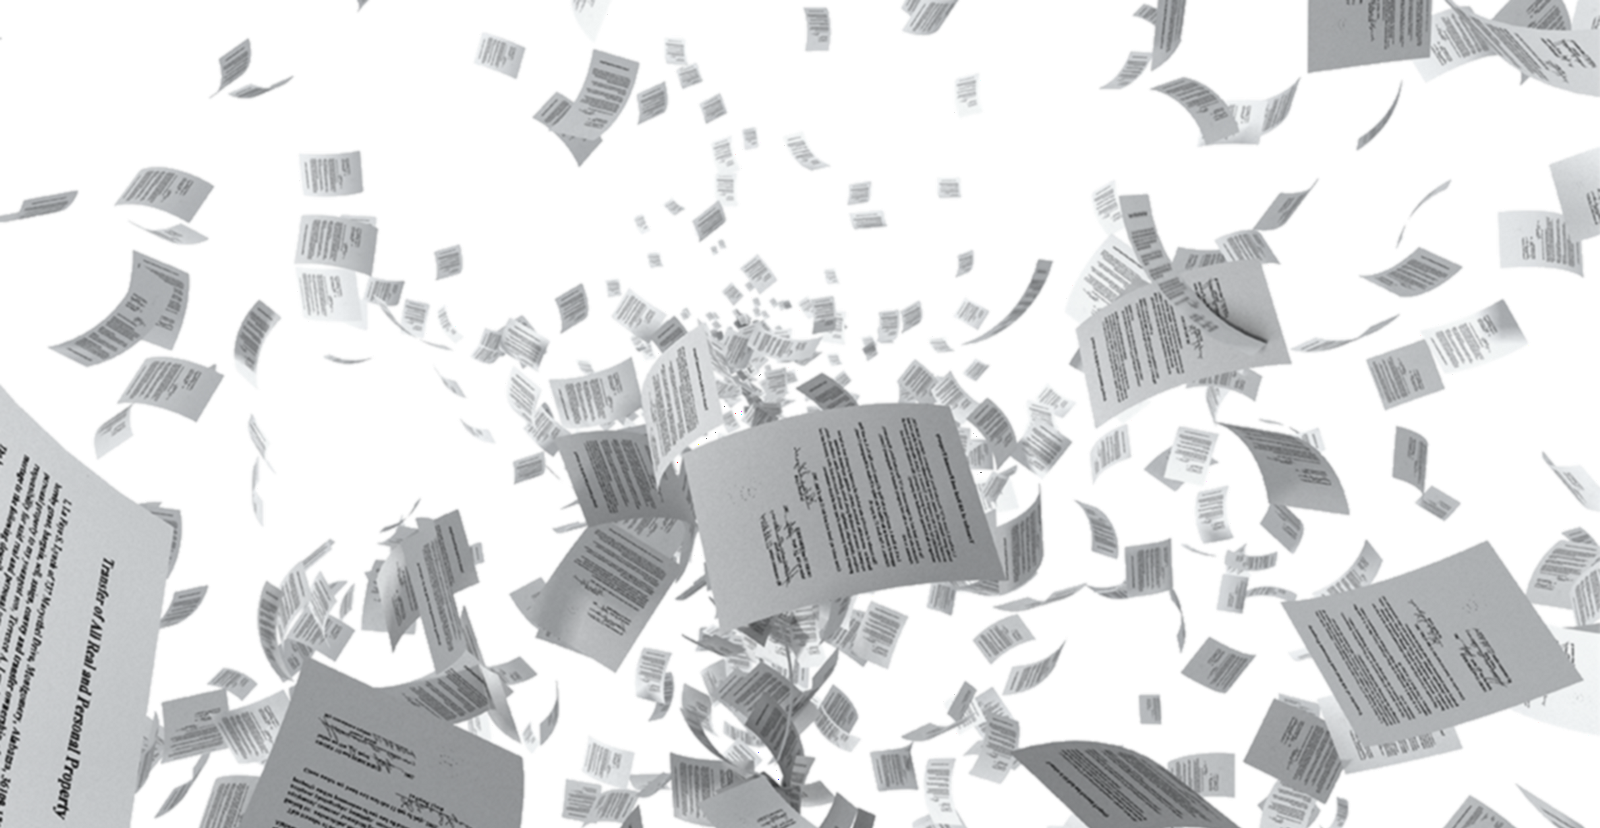 Falling paper png. The openlink structured data